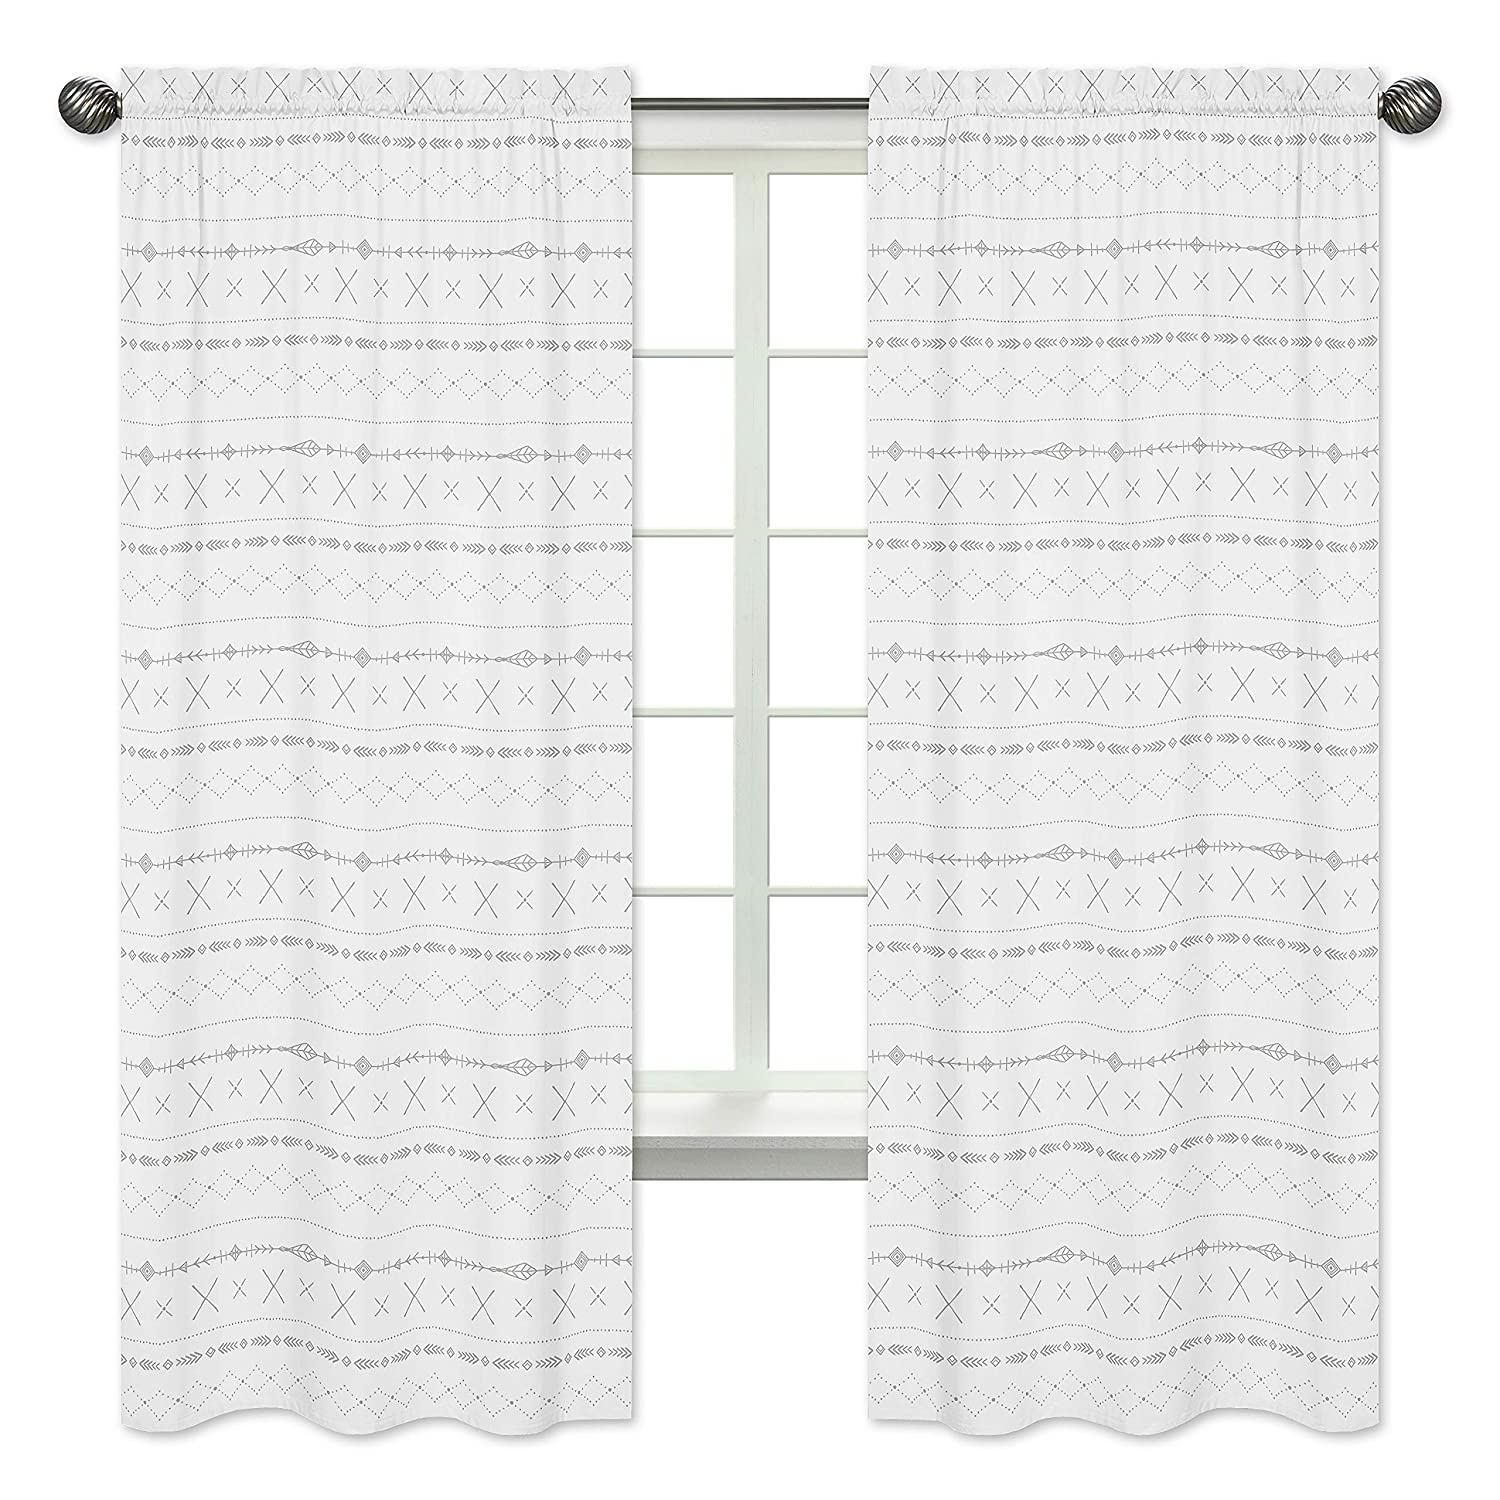 Sweet Jojo Designs Grey and White Boho Tribal Window Treatment Panels Curtains for Gray Woodland Forest Friends Collection - Set of 2